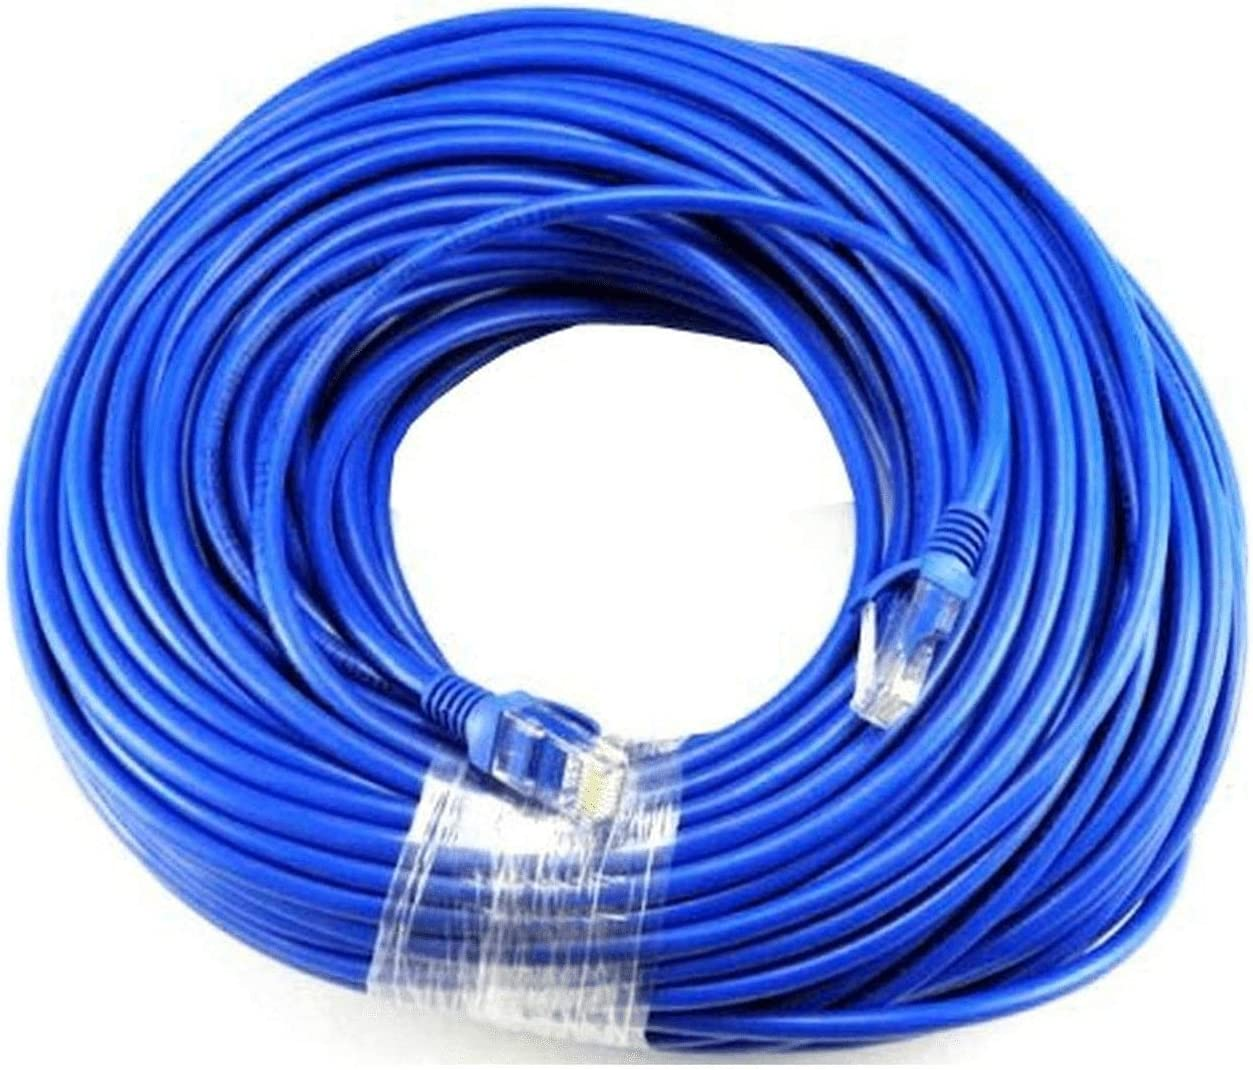 25Ft Or Cat5e 100Mhz Ethernet P